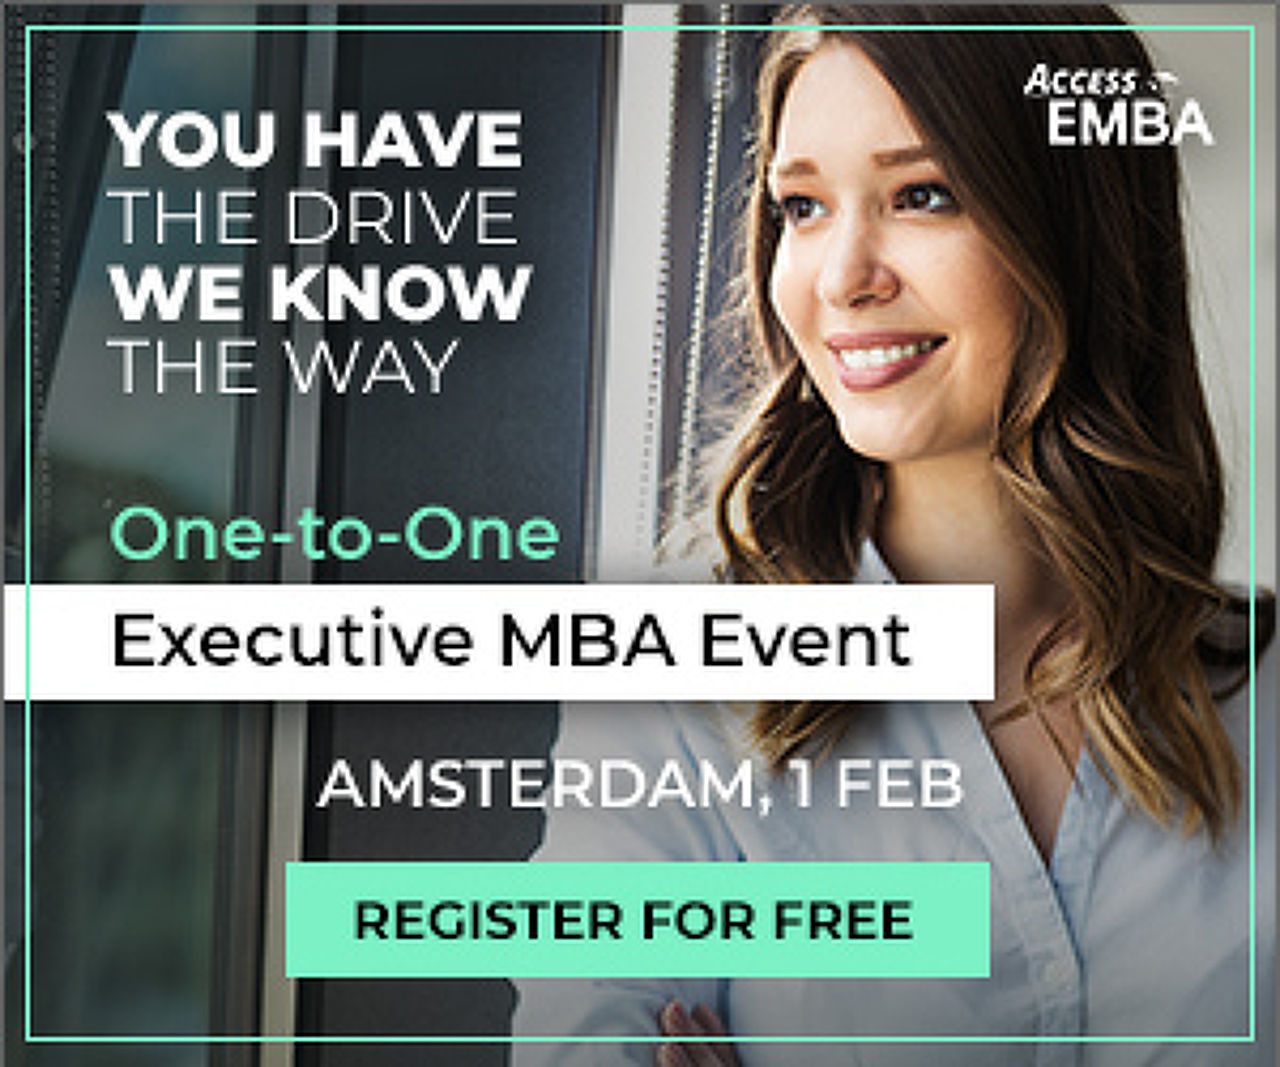 An Executive MBA event in Amsterdam!